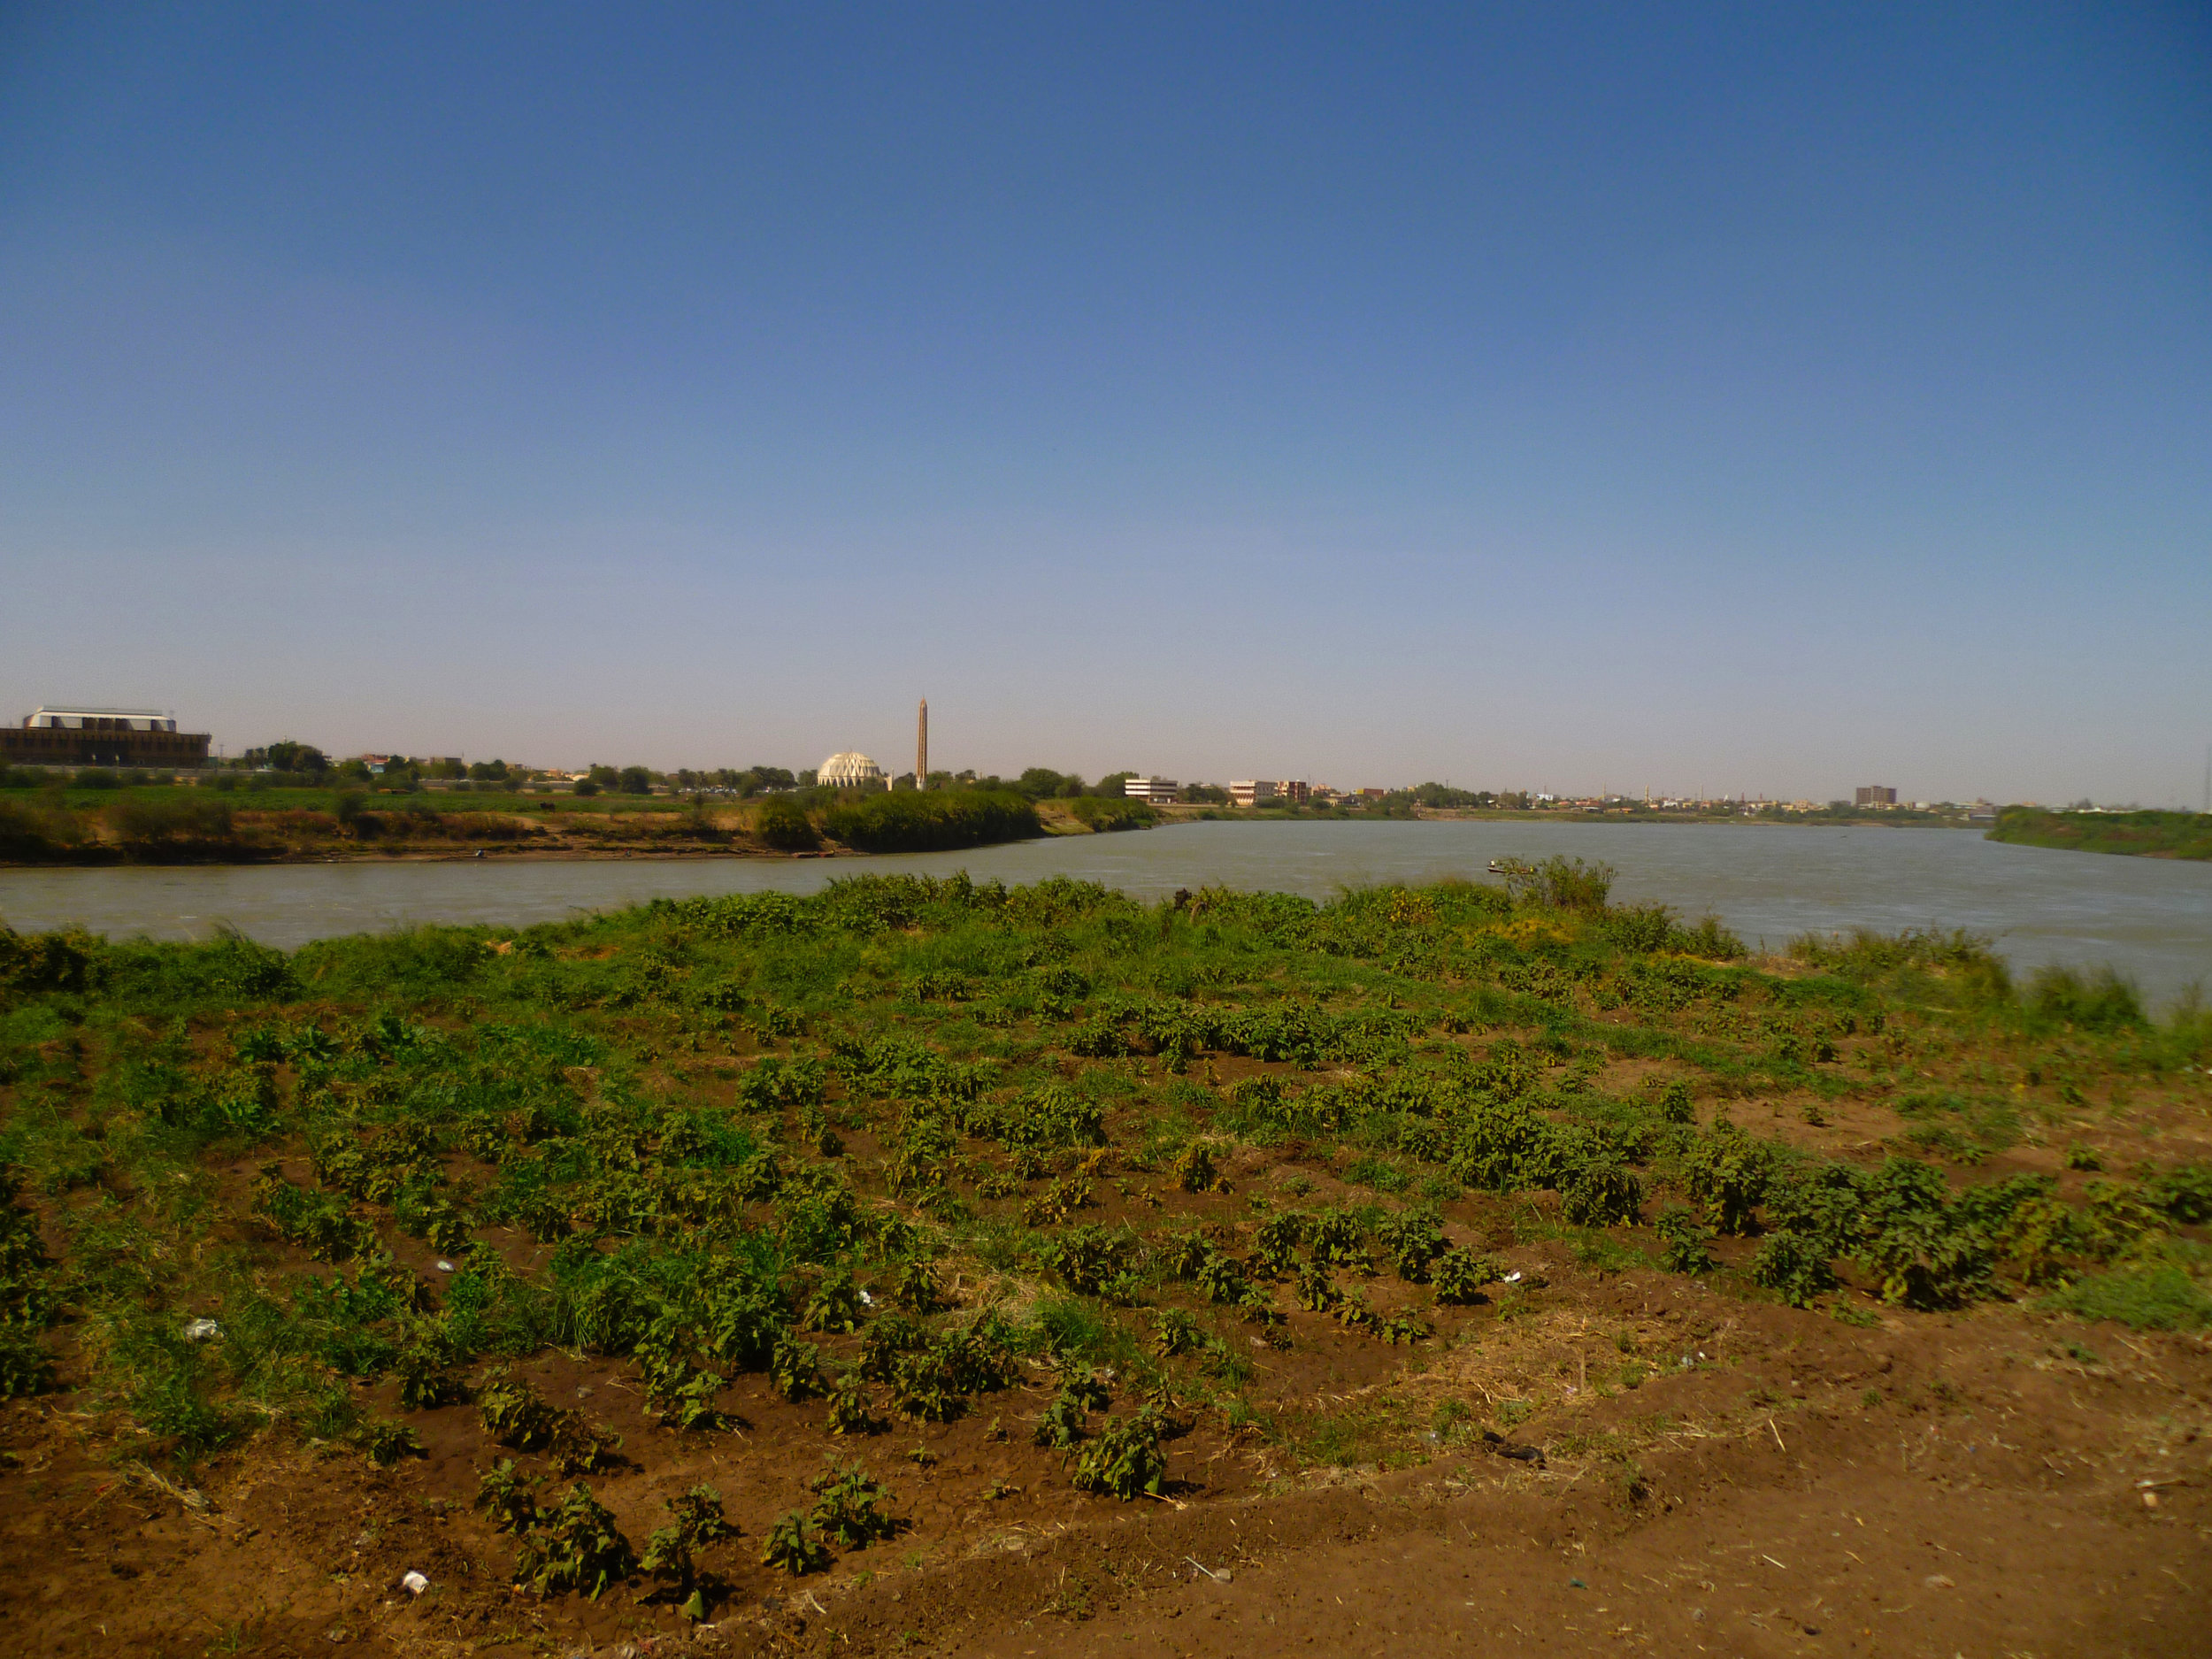 The unremarkable muddy patch of ground where the Blue and White Nile finally meet to become the infamous River Nile...